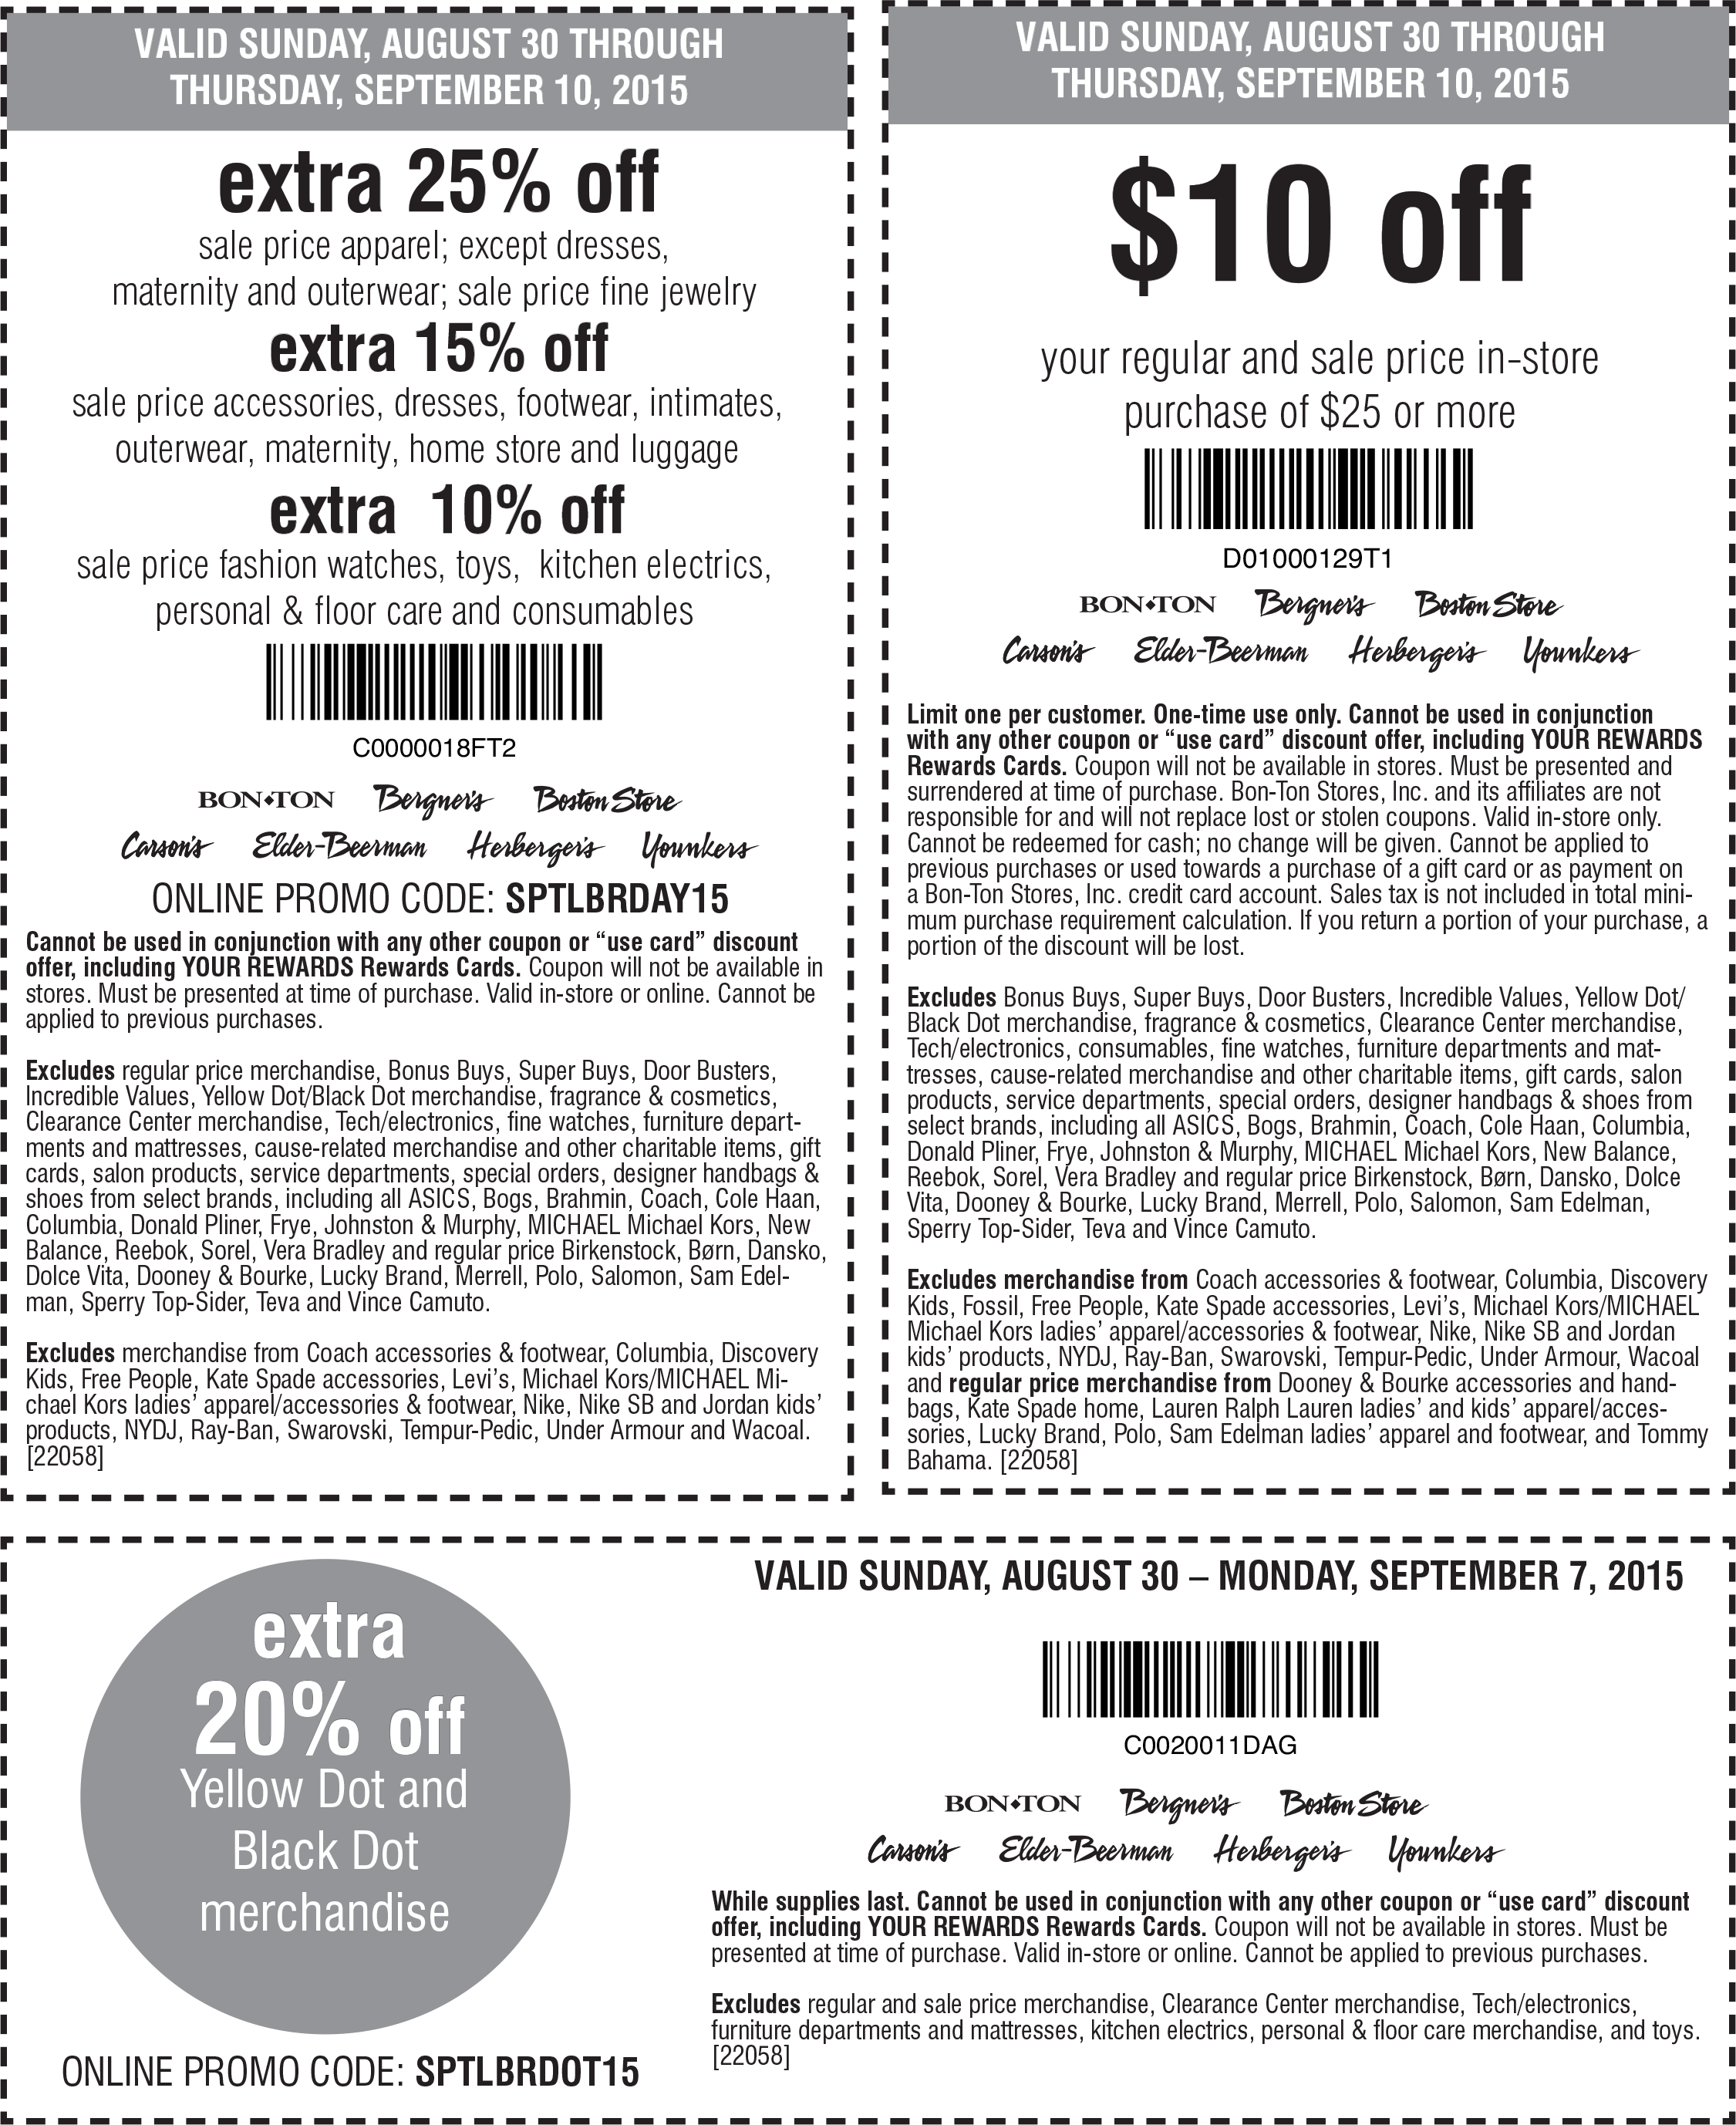 Bon Ton Coupon July 2018 Extra 25% off sale items & more at Carsons, Bon Ton & sisters stores, or online via promo code SPTLBRDAY15